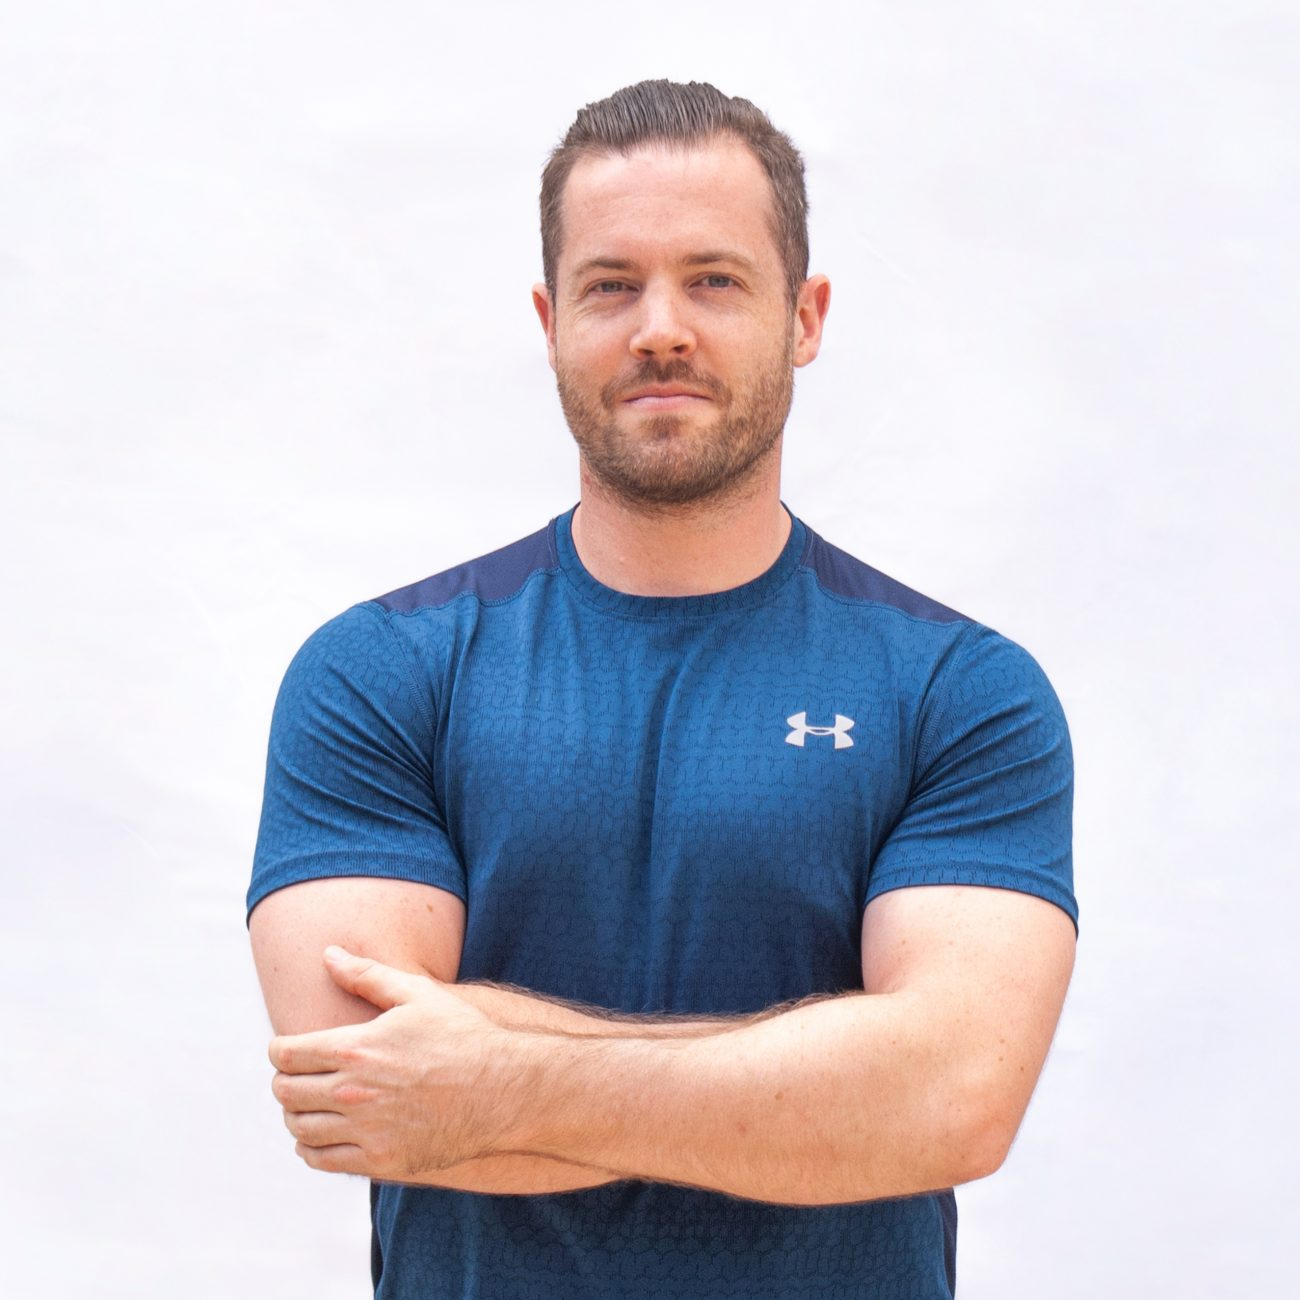 Personal Trainer Christian